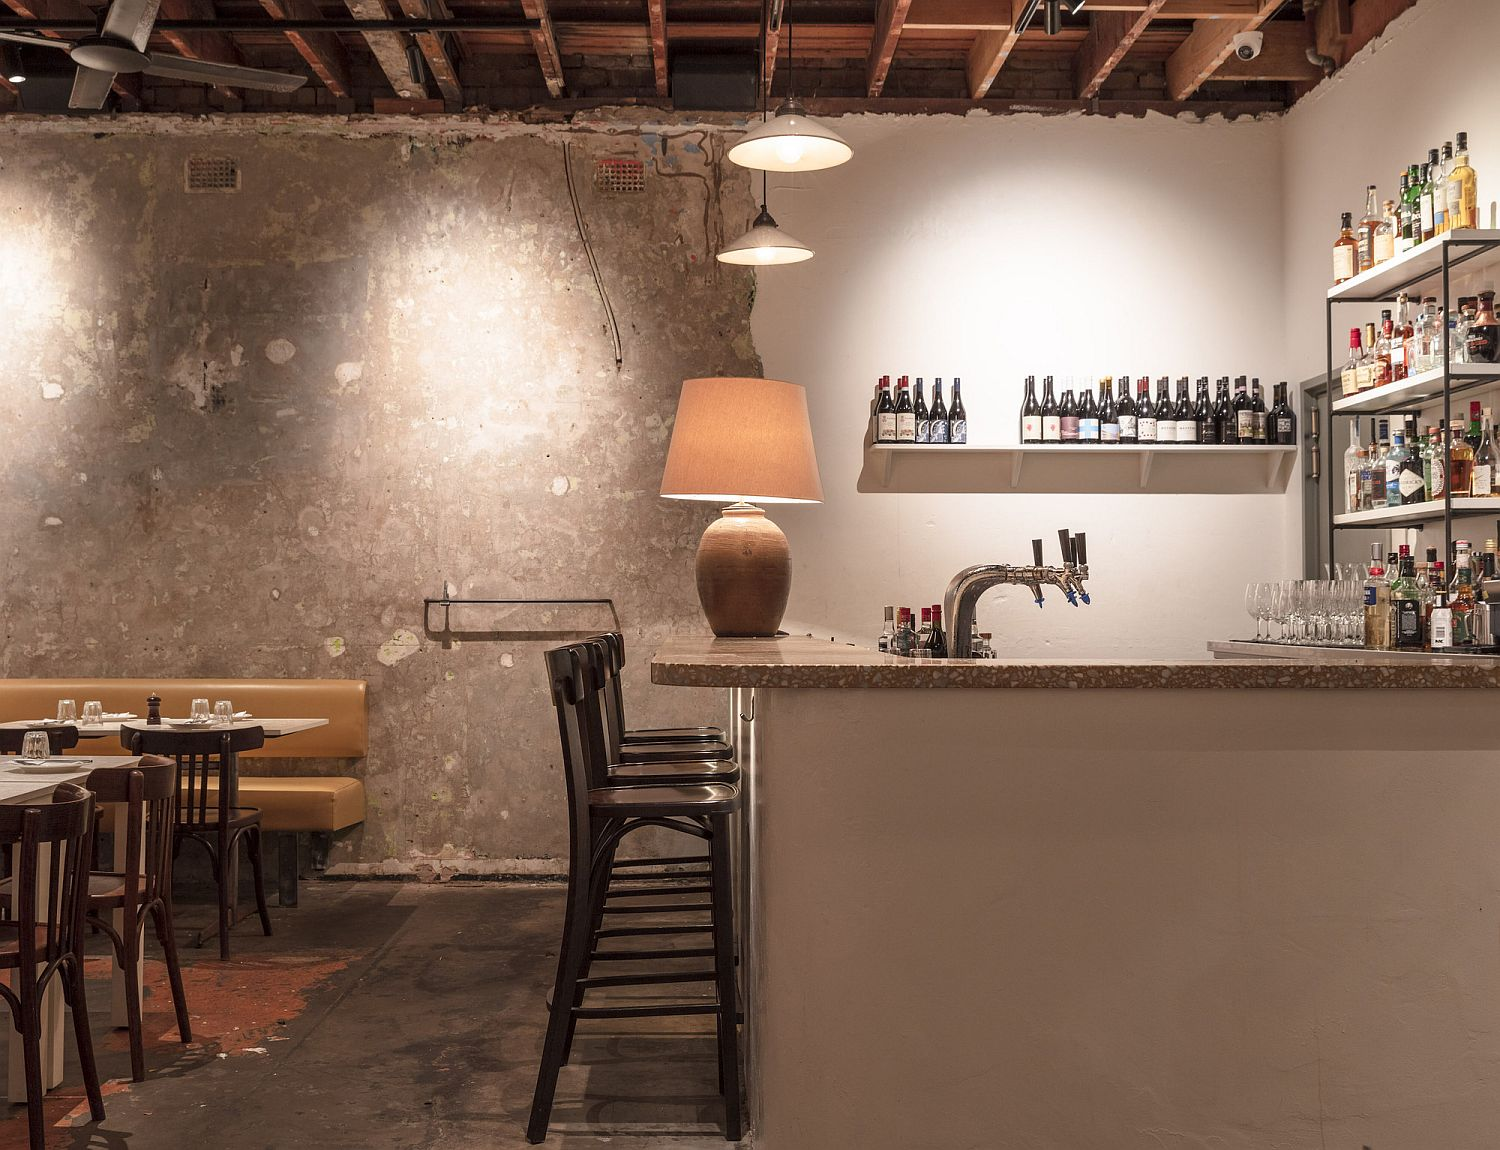 Different textured finishes inside the restaurant give it a smart appeal